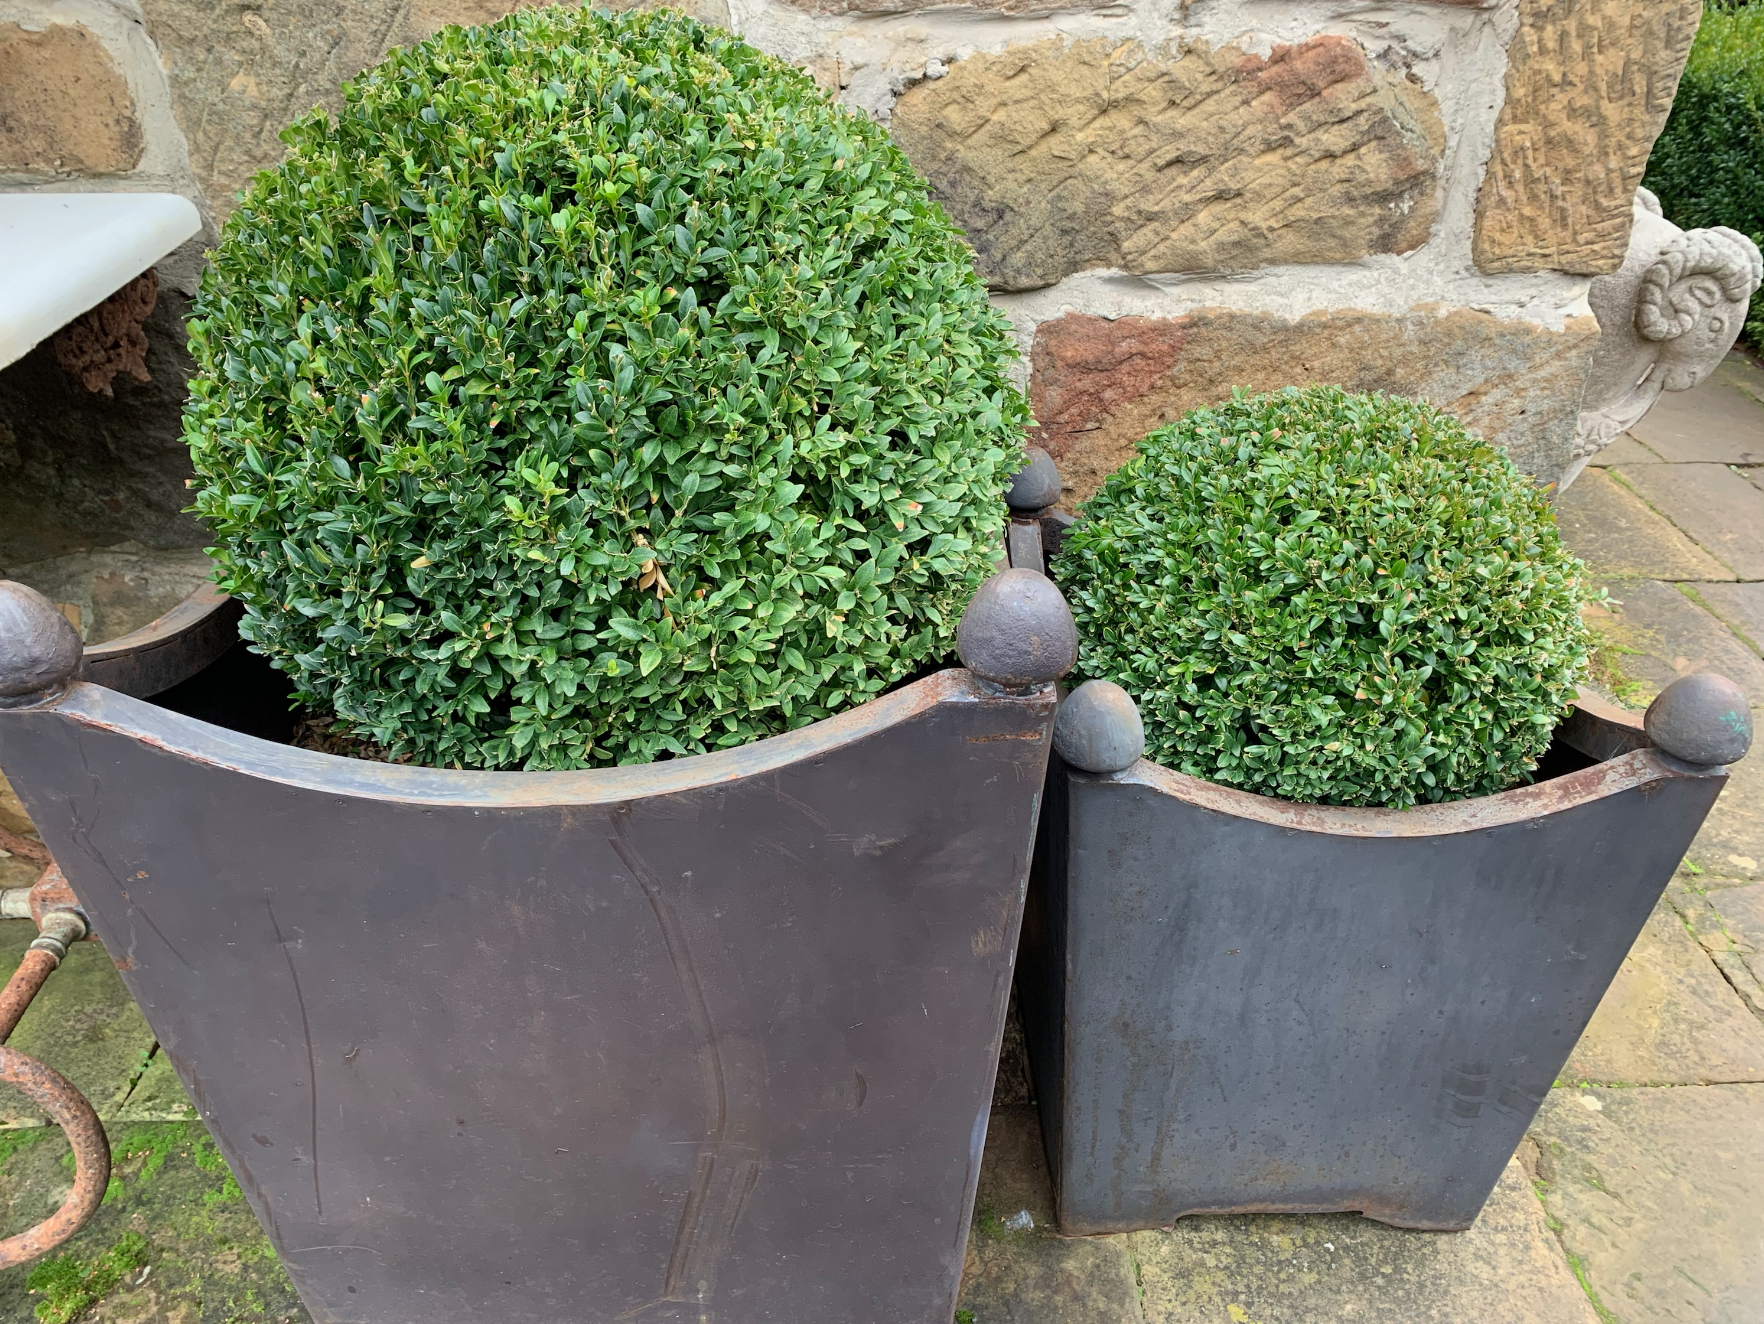 Metal swag planters with decorative knob handles (available in two sizes)  UP1825  $595 out of stock  UP1826  $495 out of stock